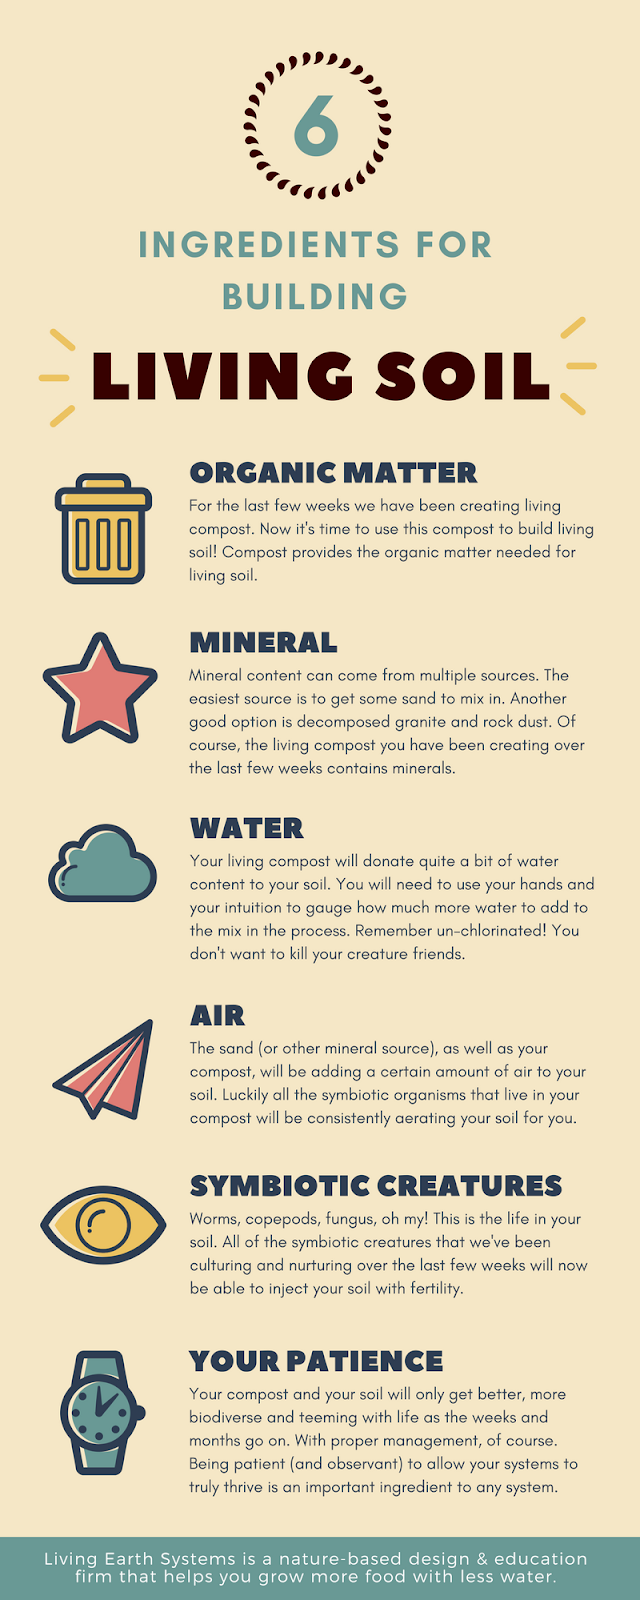 The 6 Ingredients for Building Living Soil ... from How to Get Started with Building Soil for Your Garden: Our step-by-step formula for building rich fertile topsoil for yourself! - Living Earth Systems